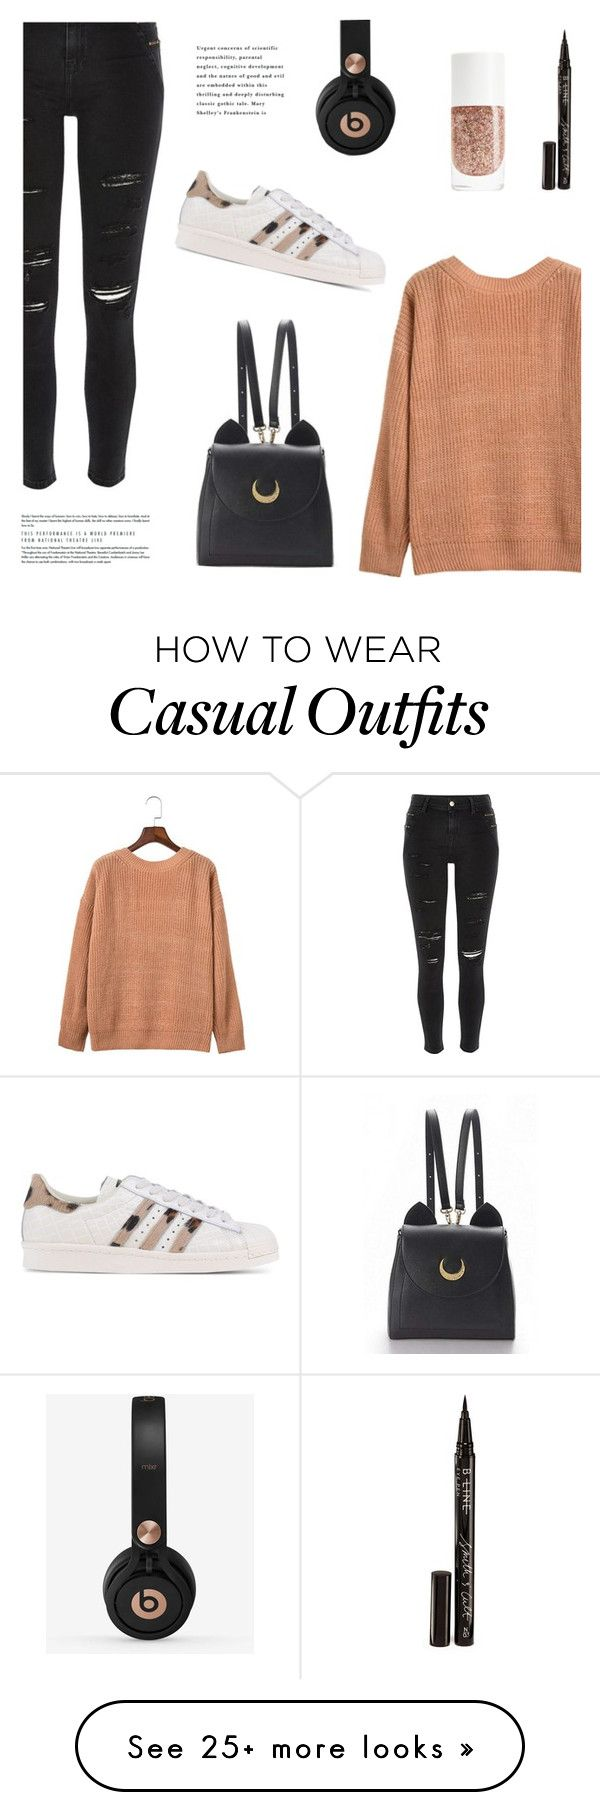 """Casual sundays"" by nadialesa on Polyvore featuring River Island, adidas Originals, Beats by Dr. Dre, WithChic, Smith & Cult, adidas, sneakers and sweaterweather"